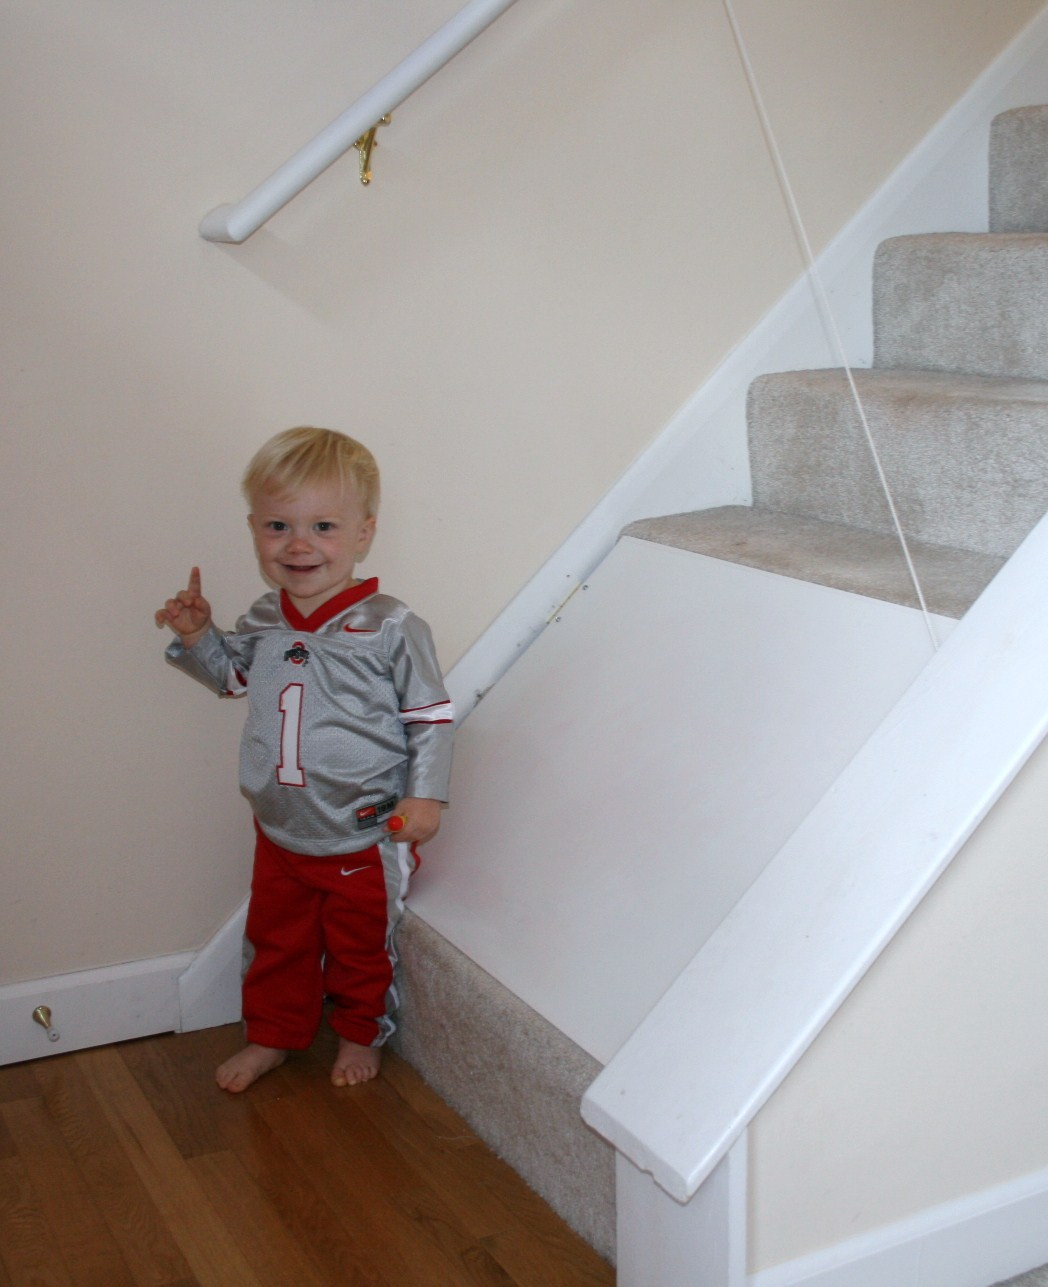 Attrayant Get A Stair Blocker For Your Home Or As A Gift! Baby Gates ...